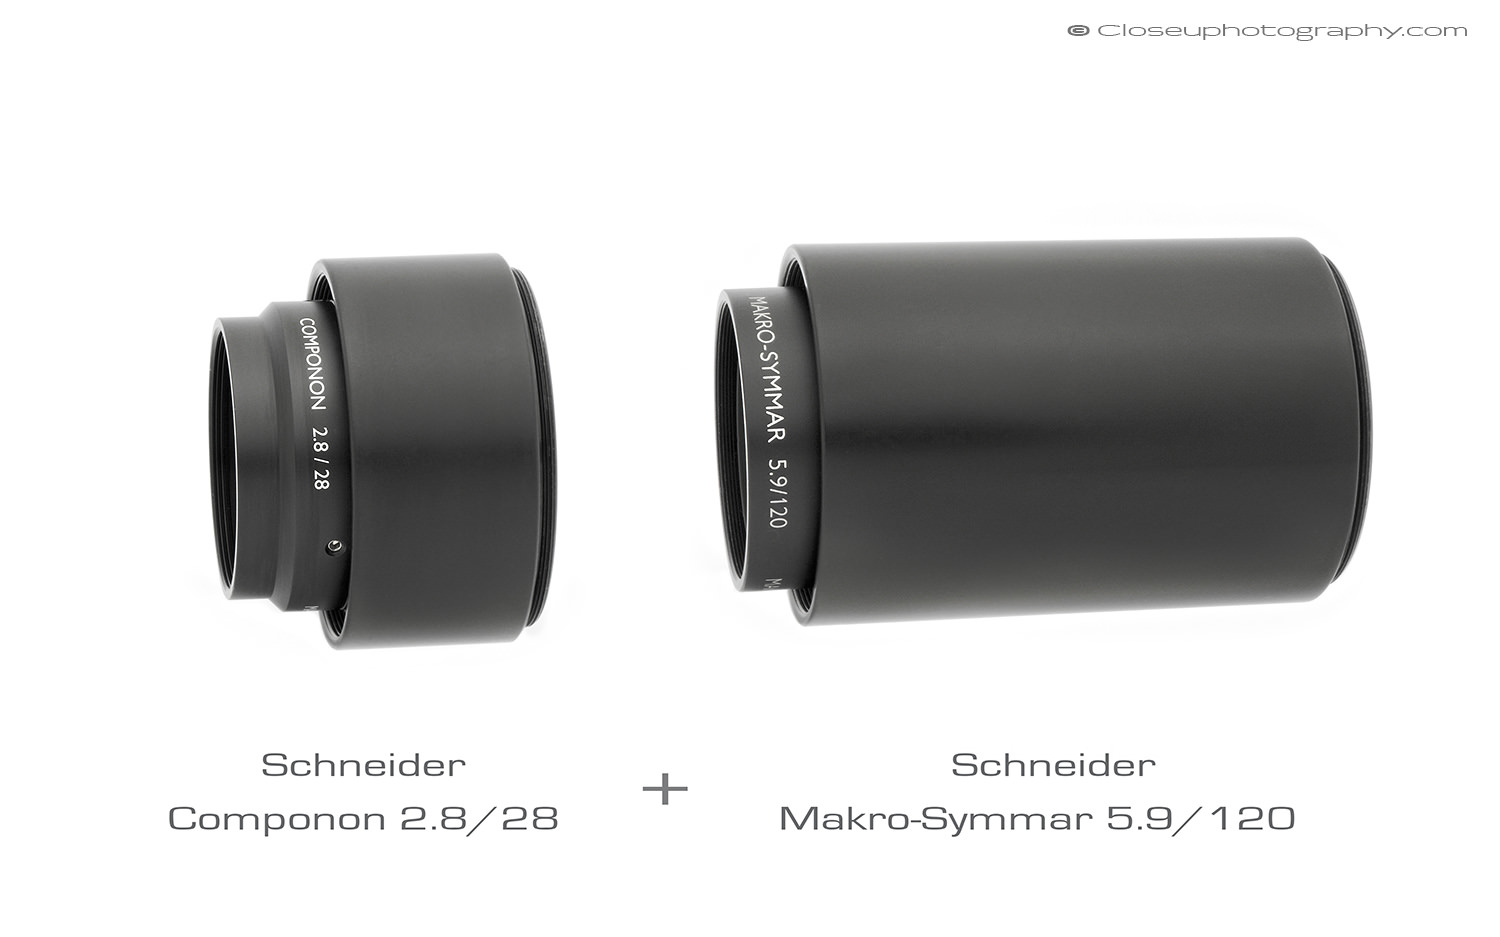 Schneider Componon 2.8/28 reversed and Schneider Makro-Symmar 5.6/120. The 2.8/28 hood is mounted on the rear of the lens.